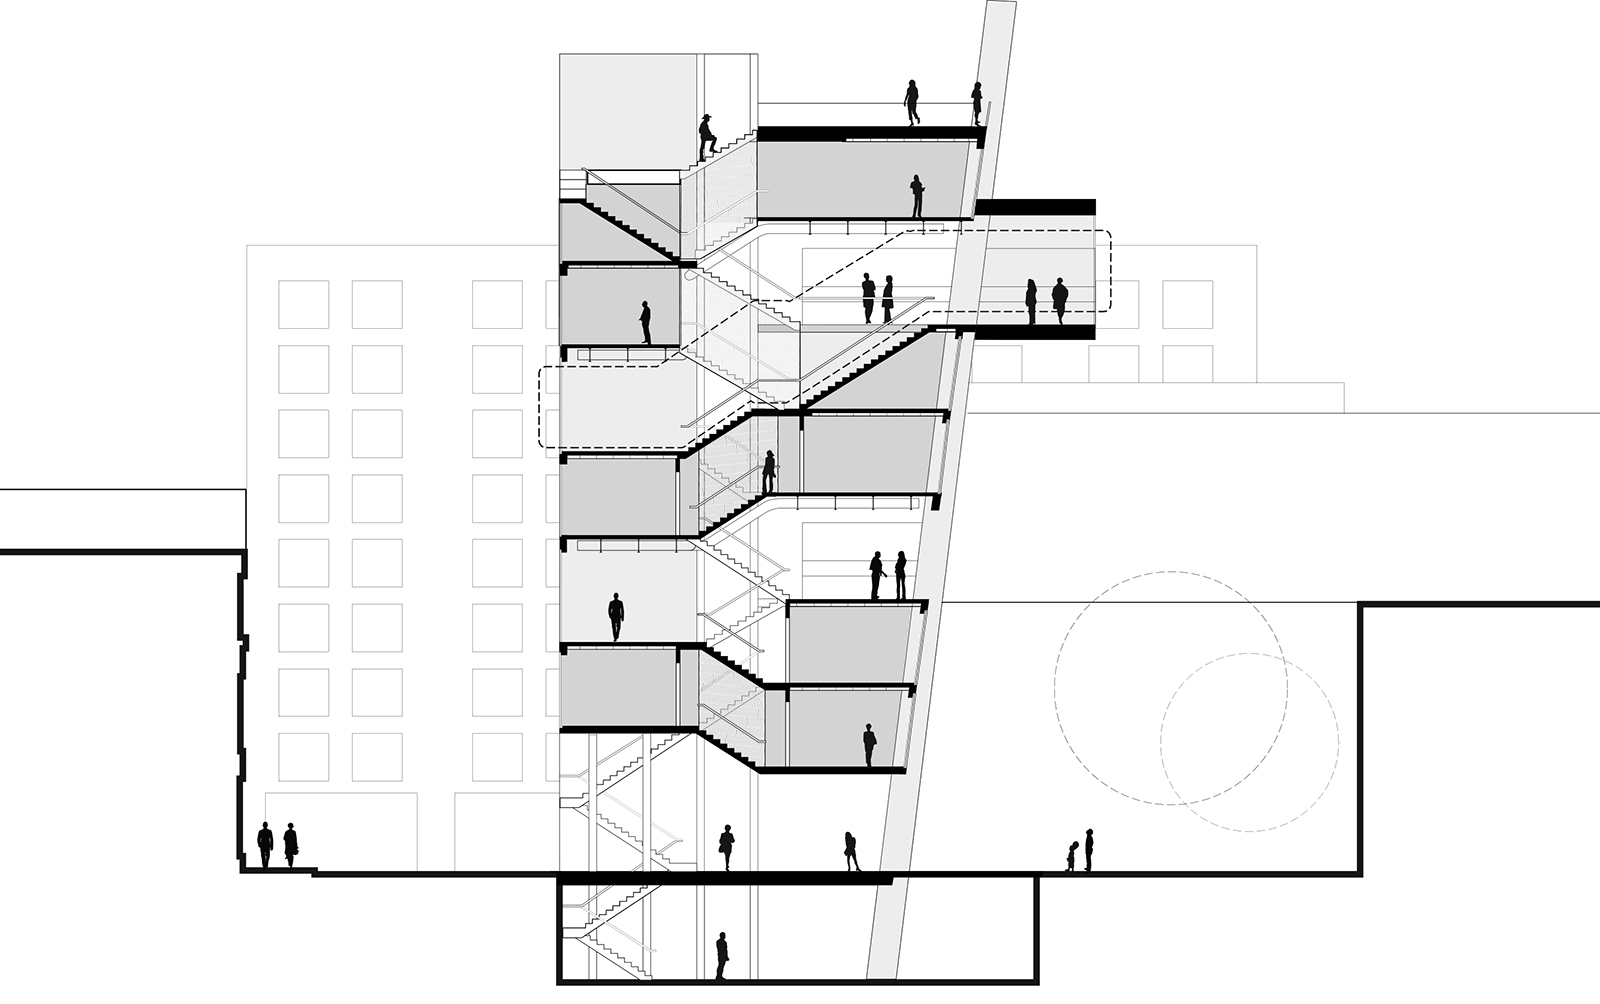 Section drawing of the CART project showing the housing lifted above the public alleyway and the shared communal spaces